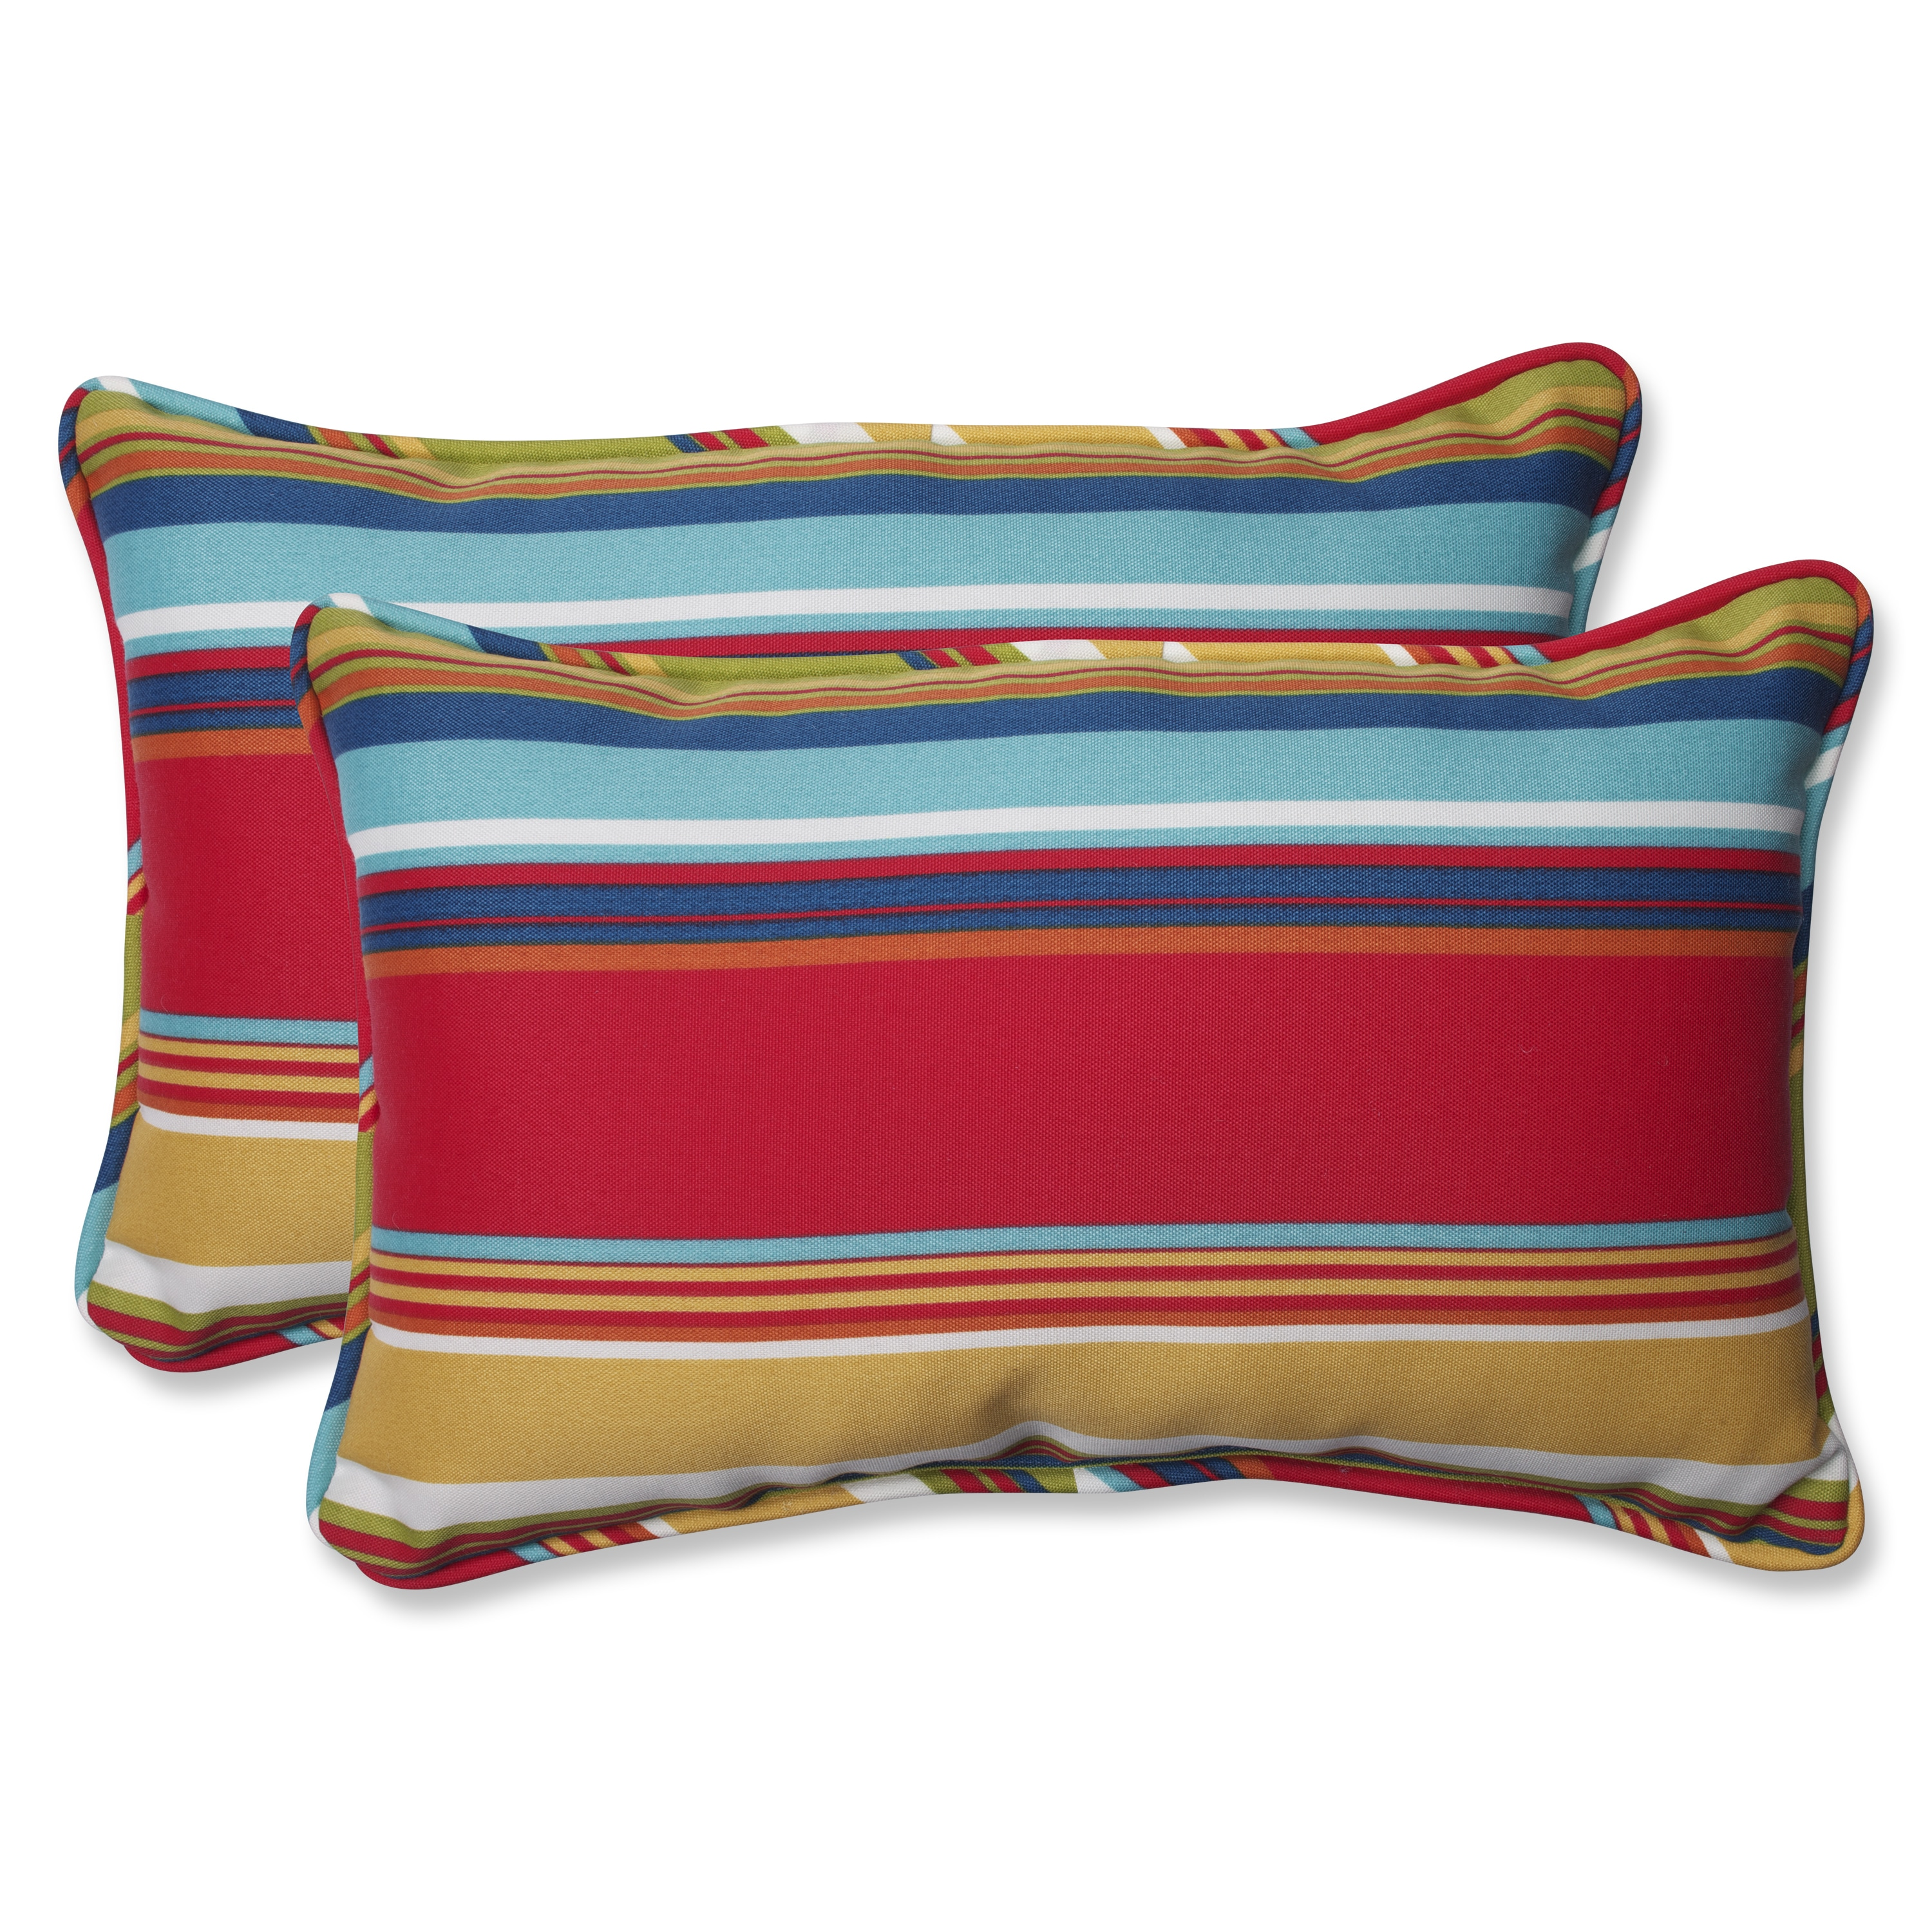 Pillow Perfect Outdoor Topanga Stripe Lagoon Rectangular Throw Pillow Set of 2 537177